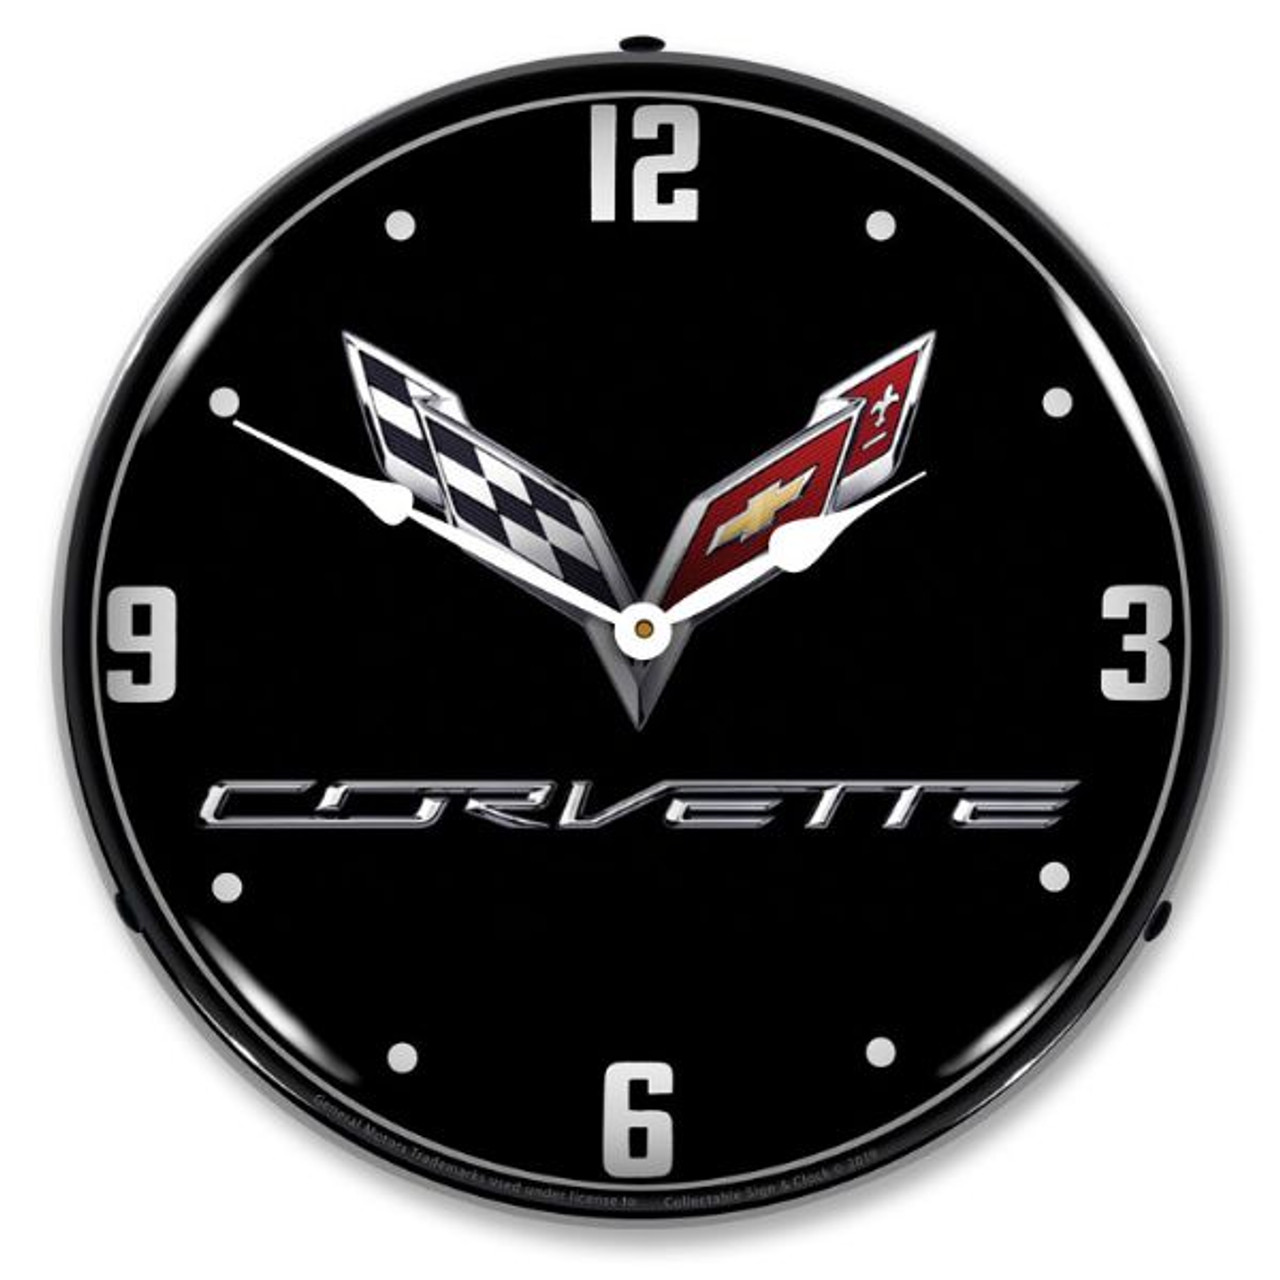 C7 Corvette Black Tie LED Lighted Wall Clock 14 x 14 Inches